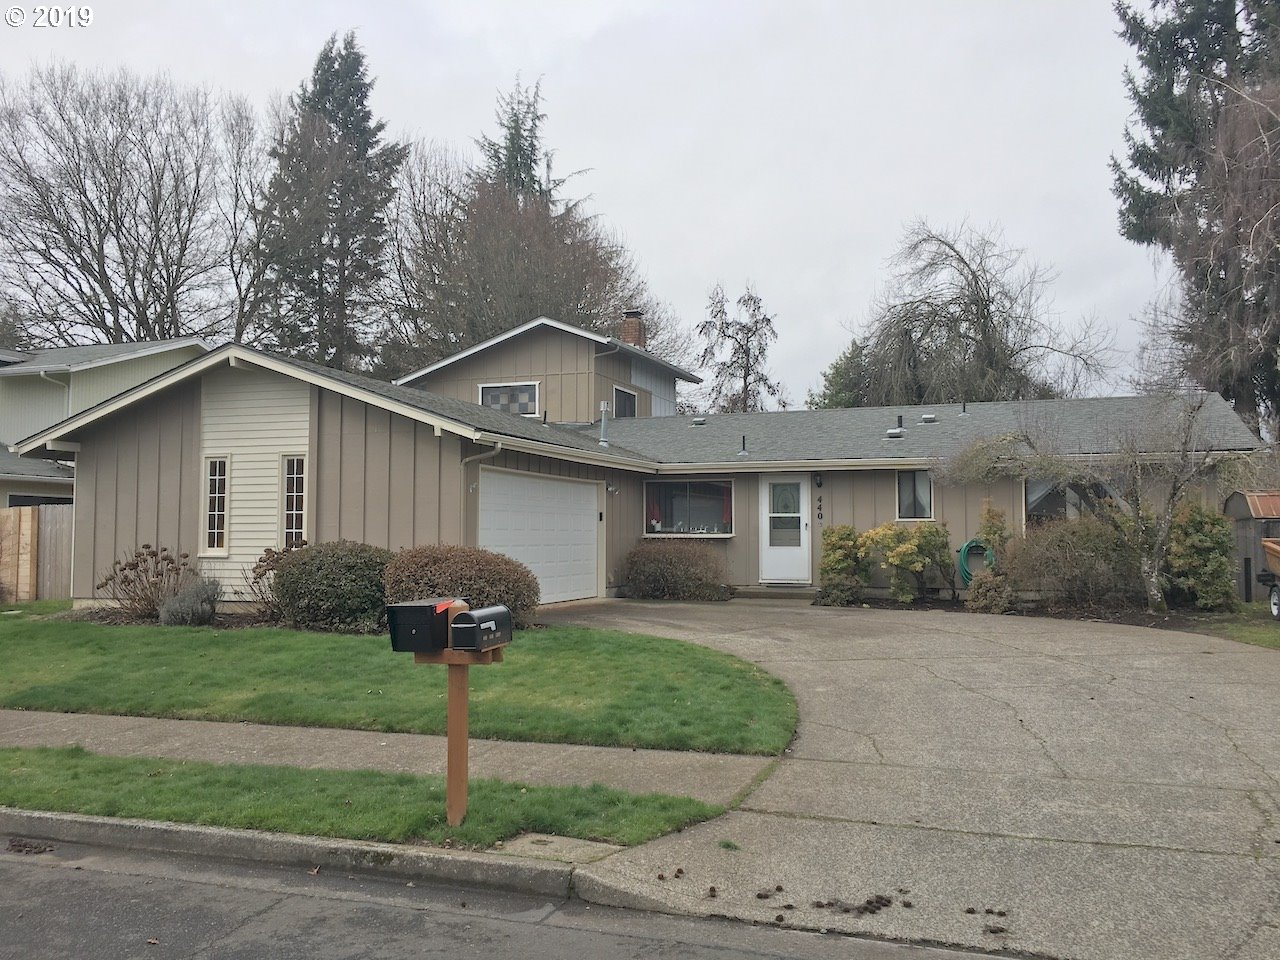 440 MAR LOOP, Eugene OR 97401